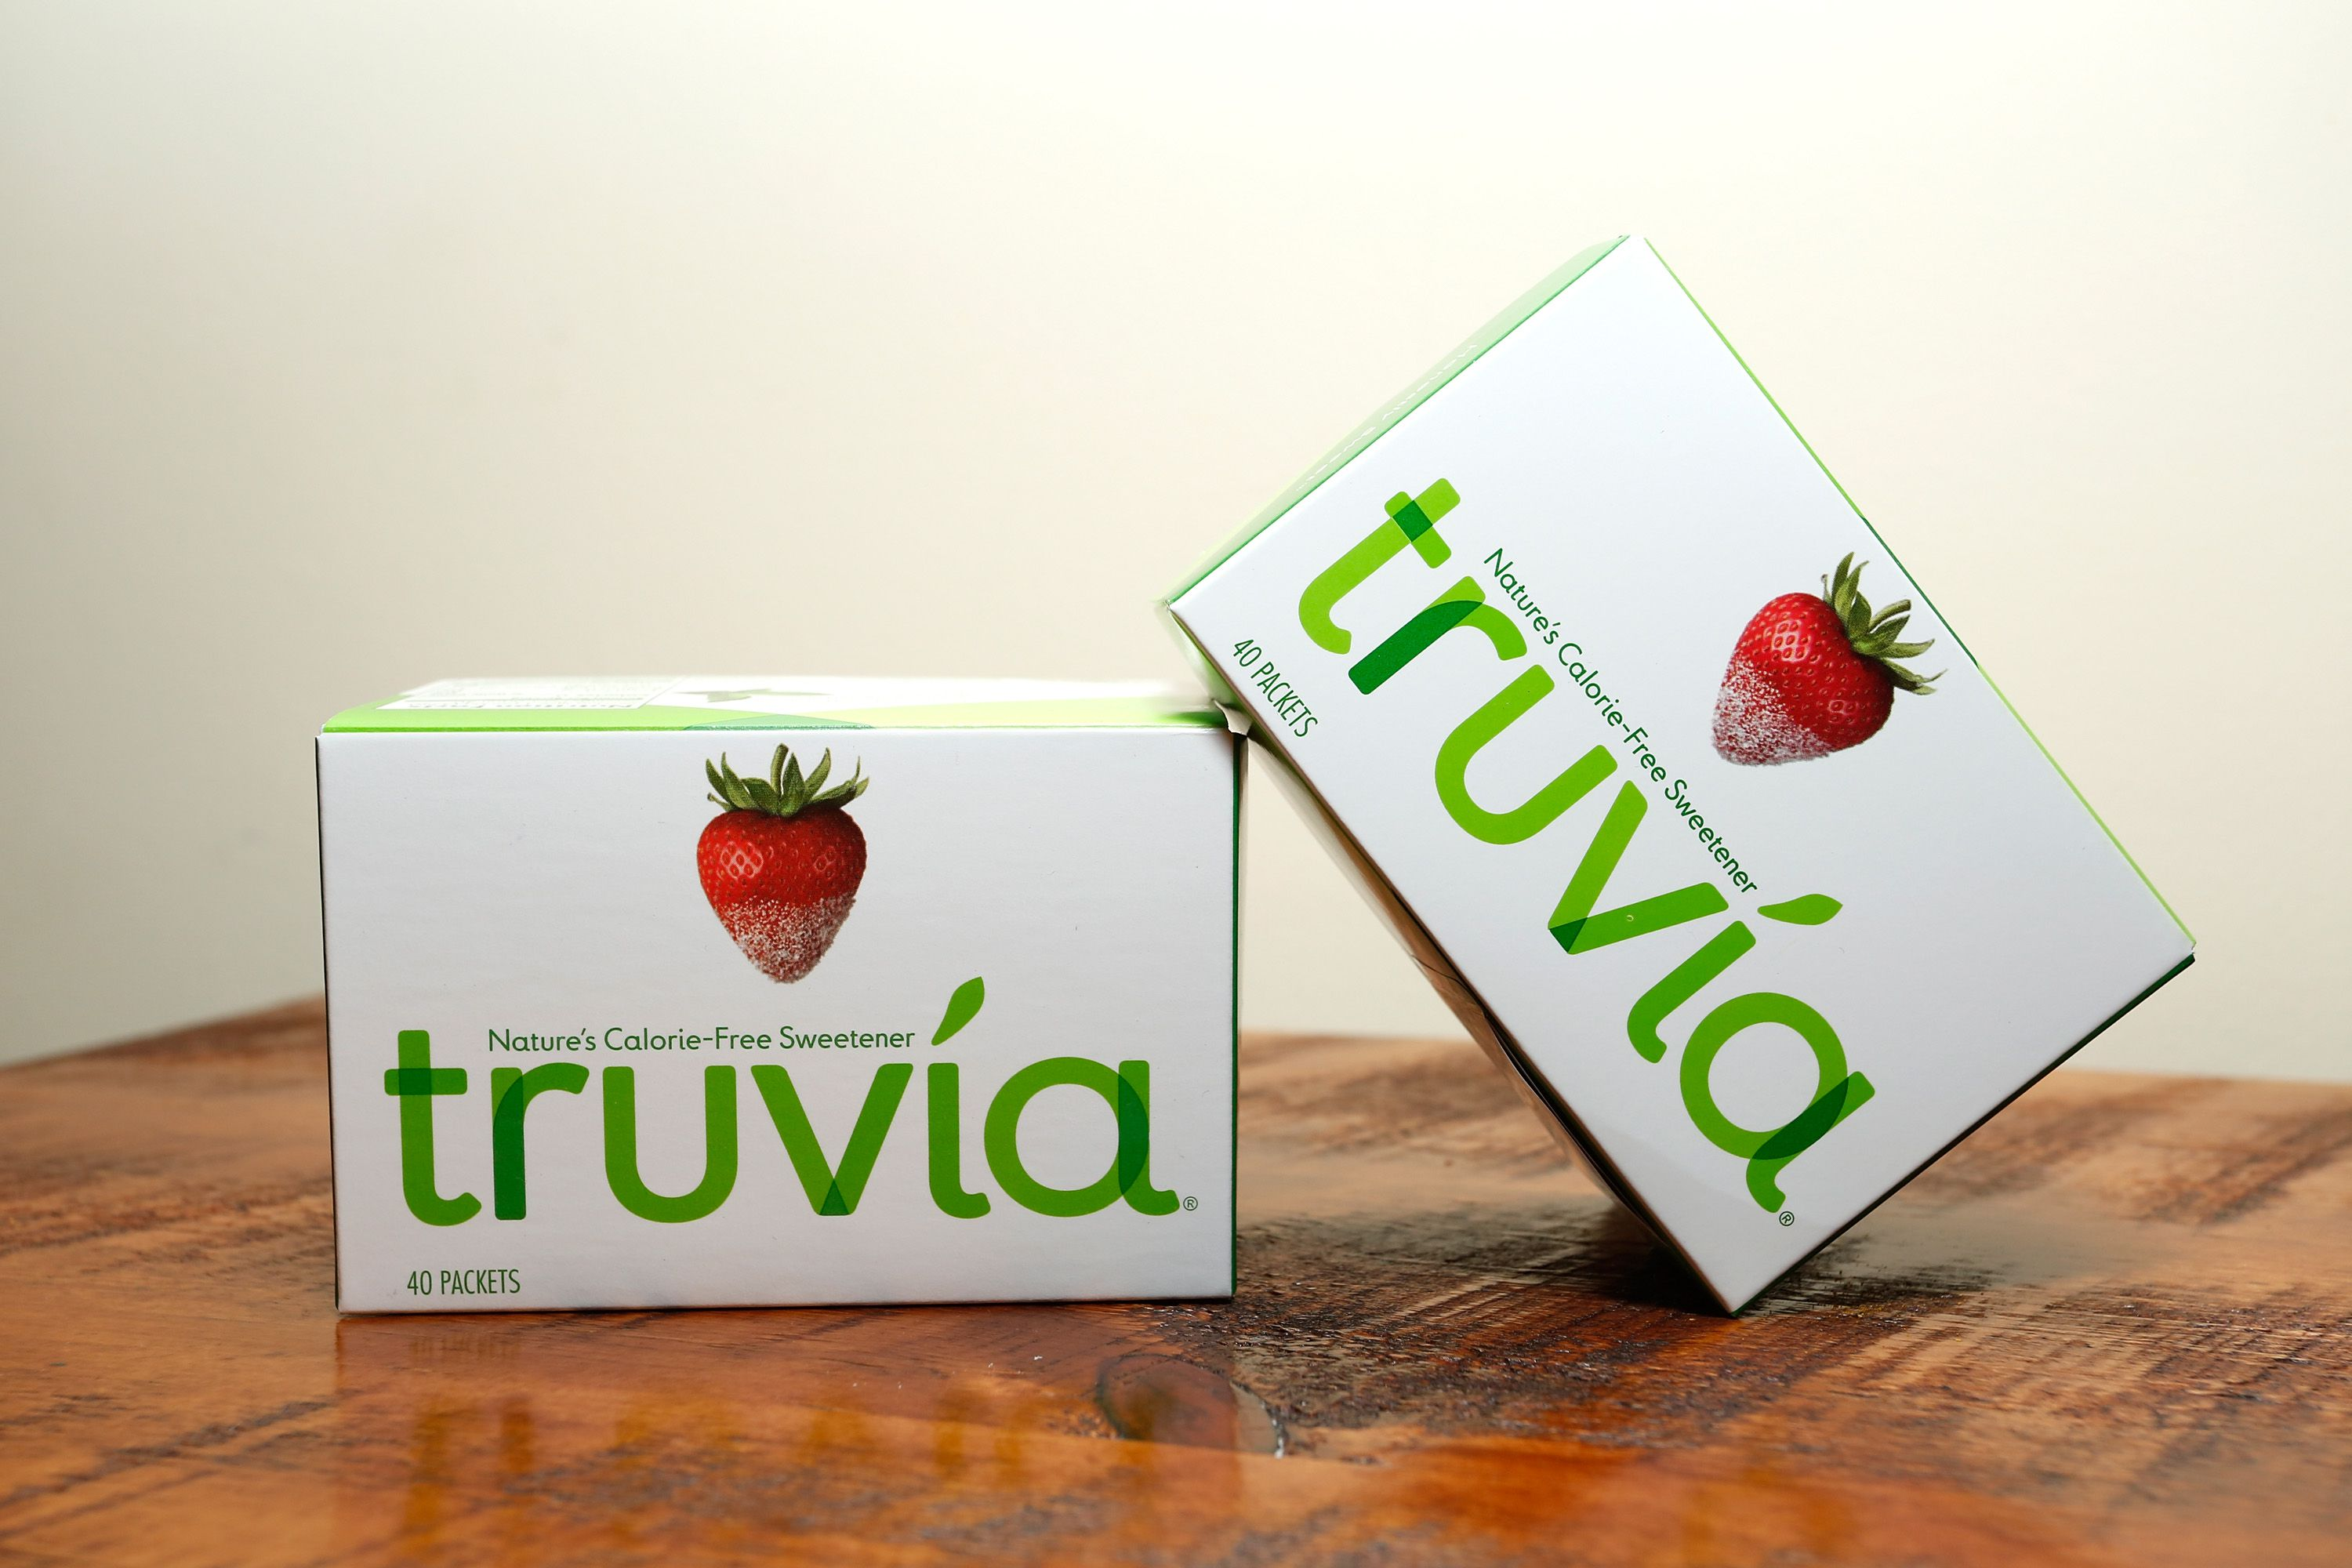 Truvia as a Replacement for Sugar in Baking